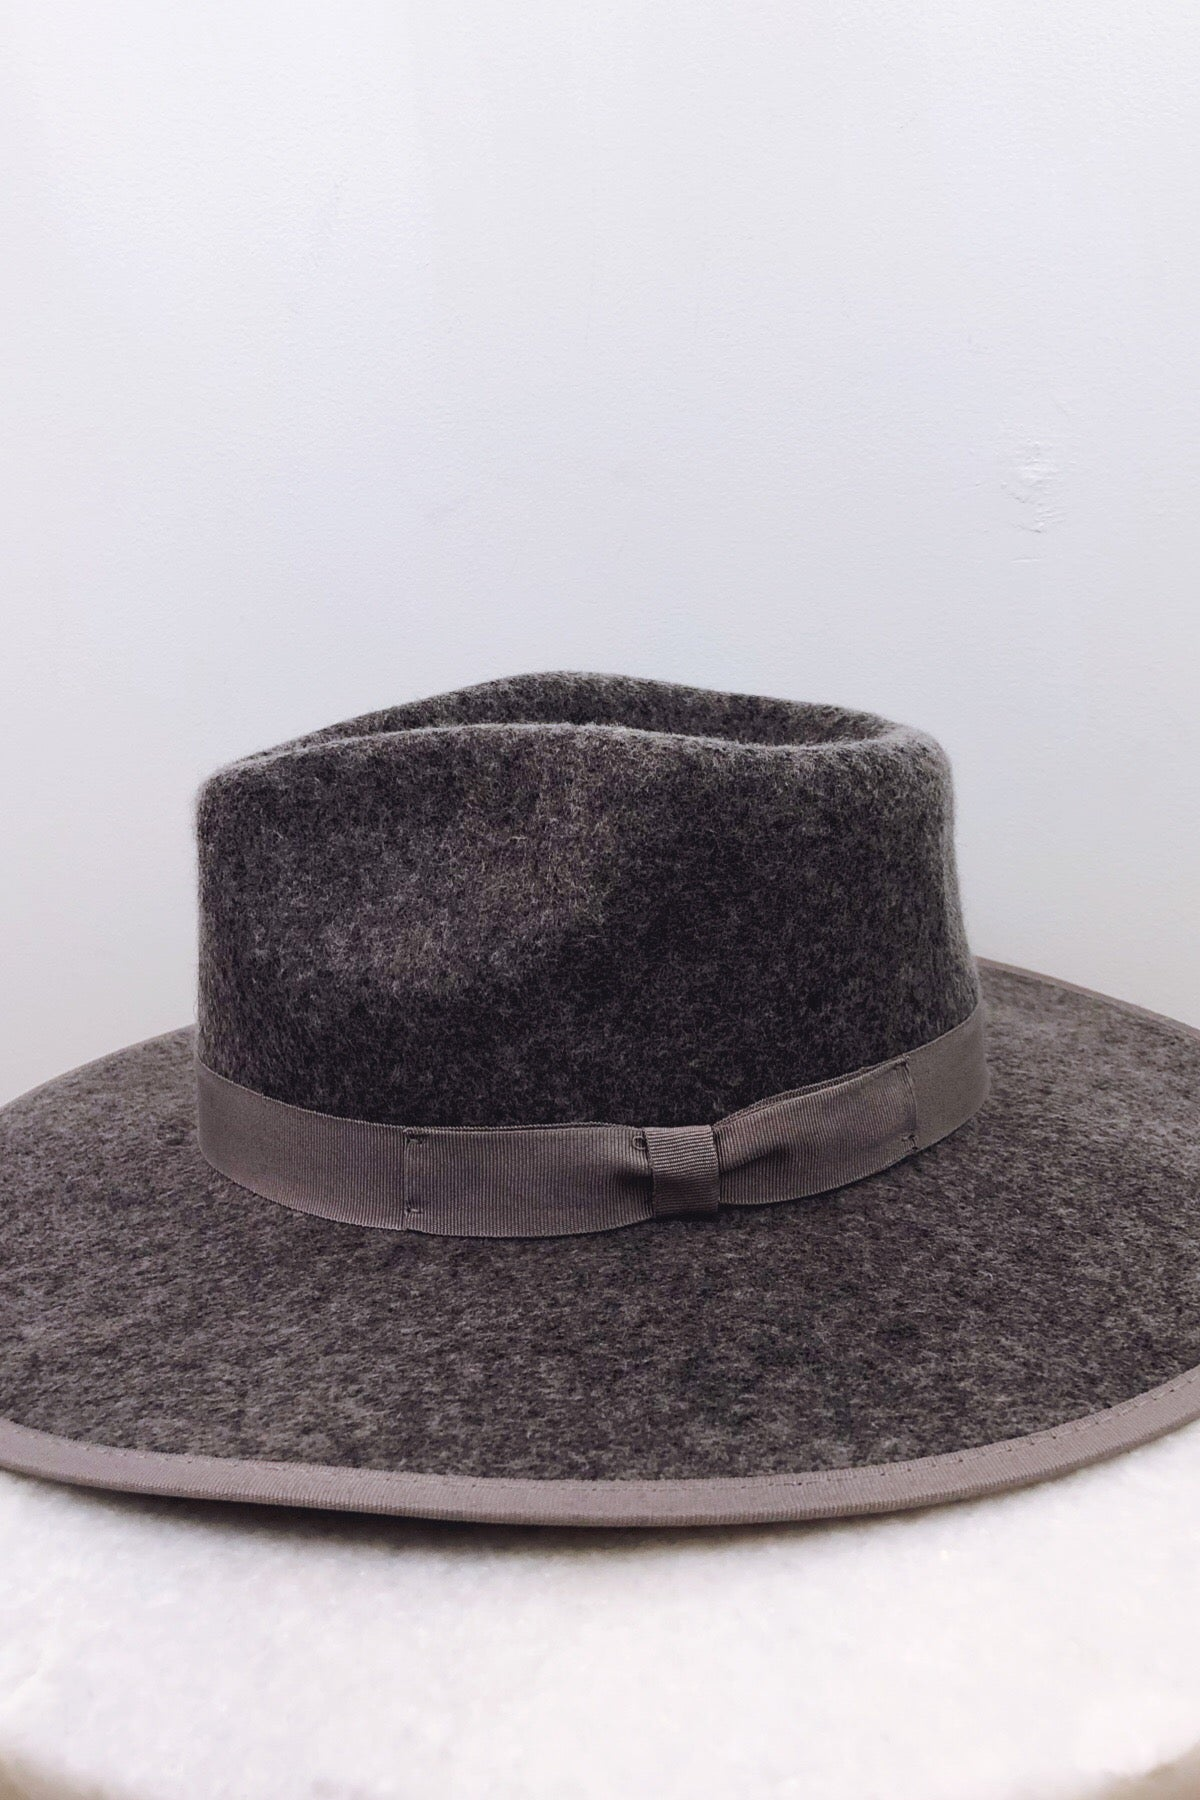 Barry Stiff Brim Wool Panama Hat - More  colors | Olive & Pique